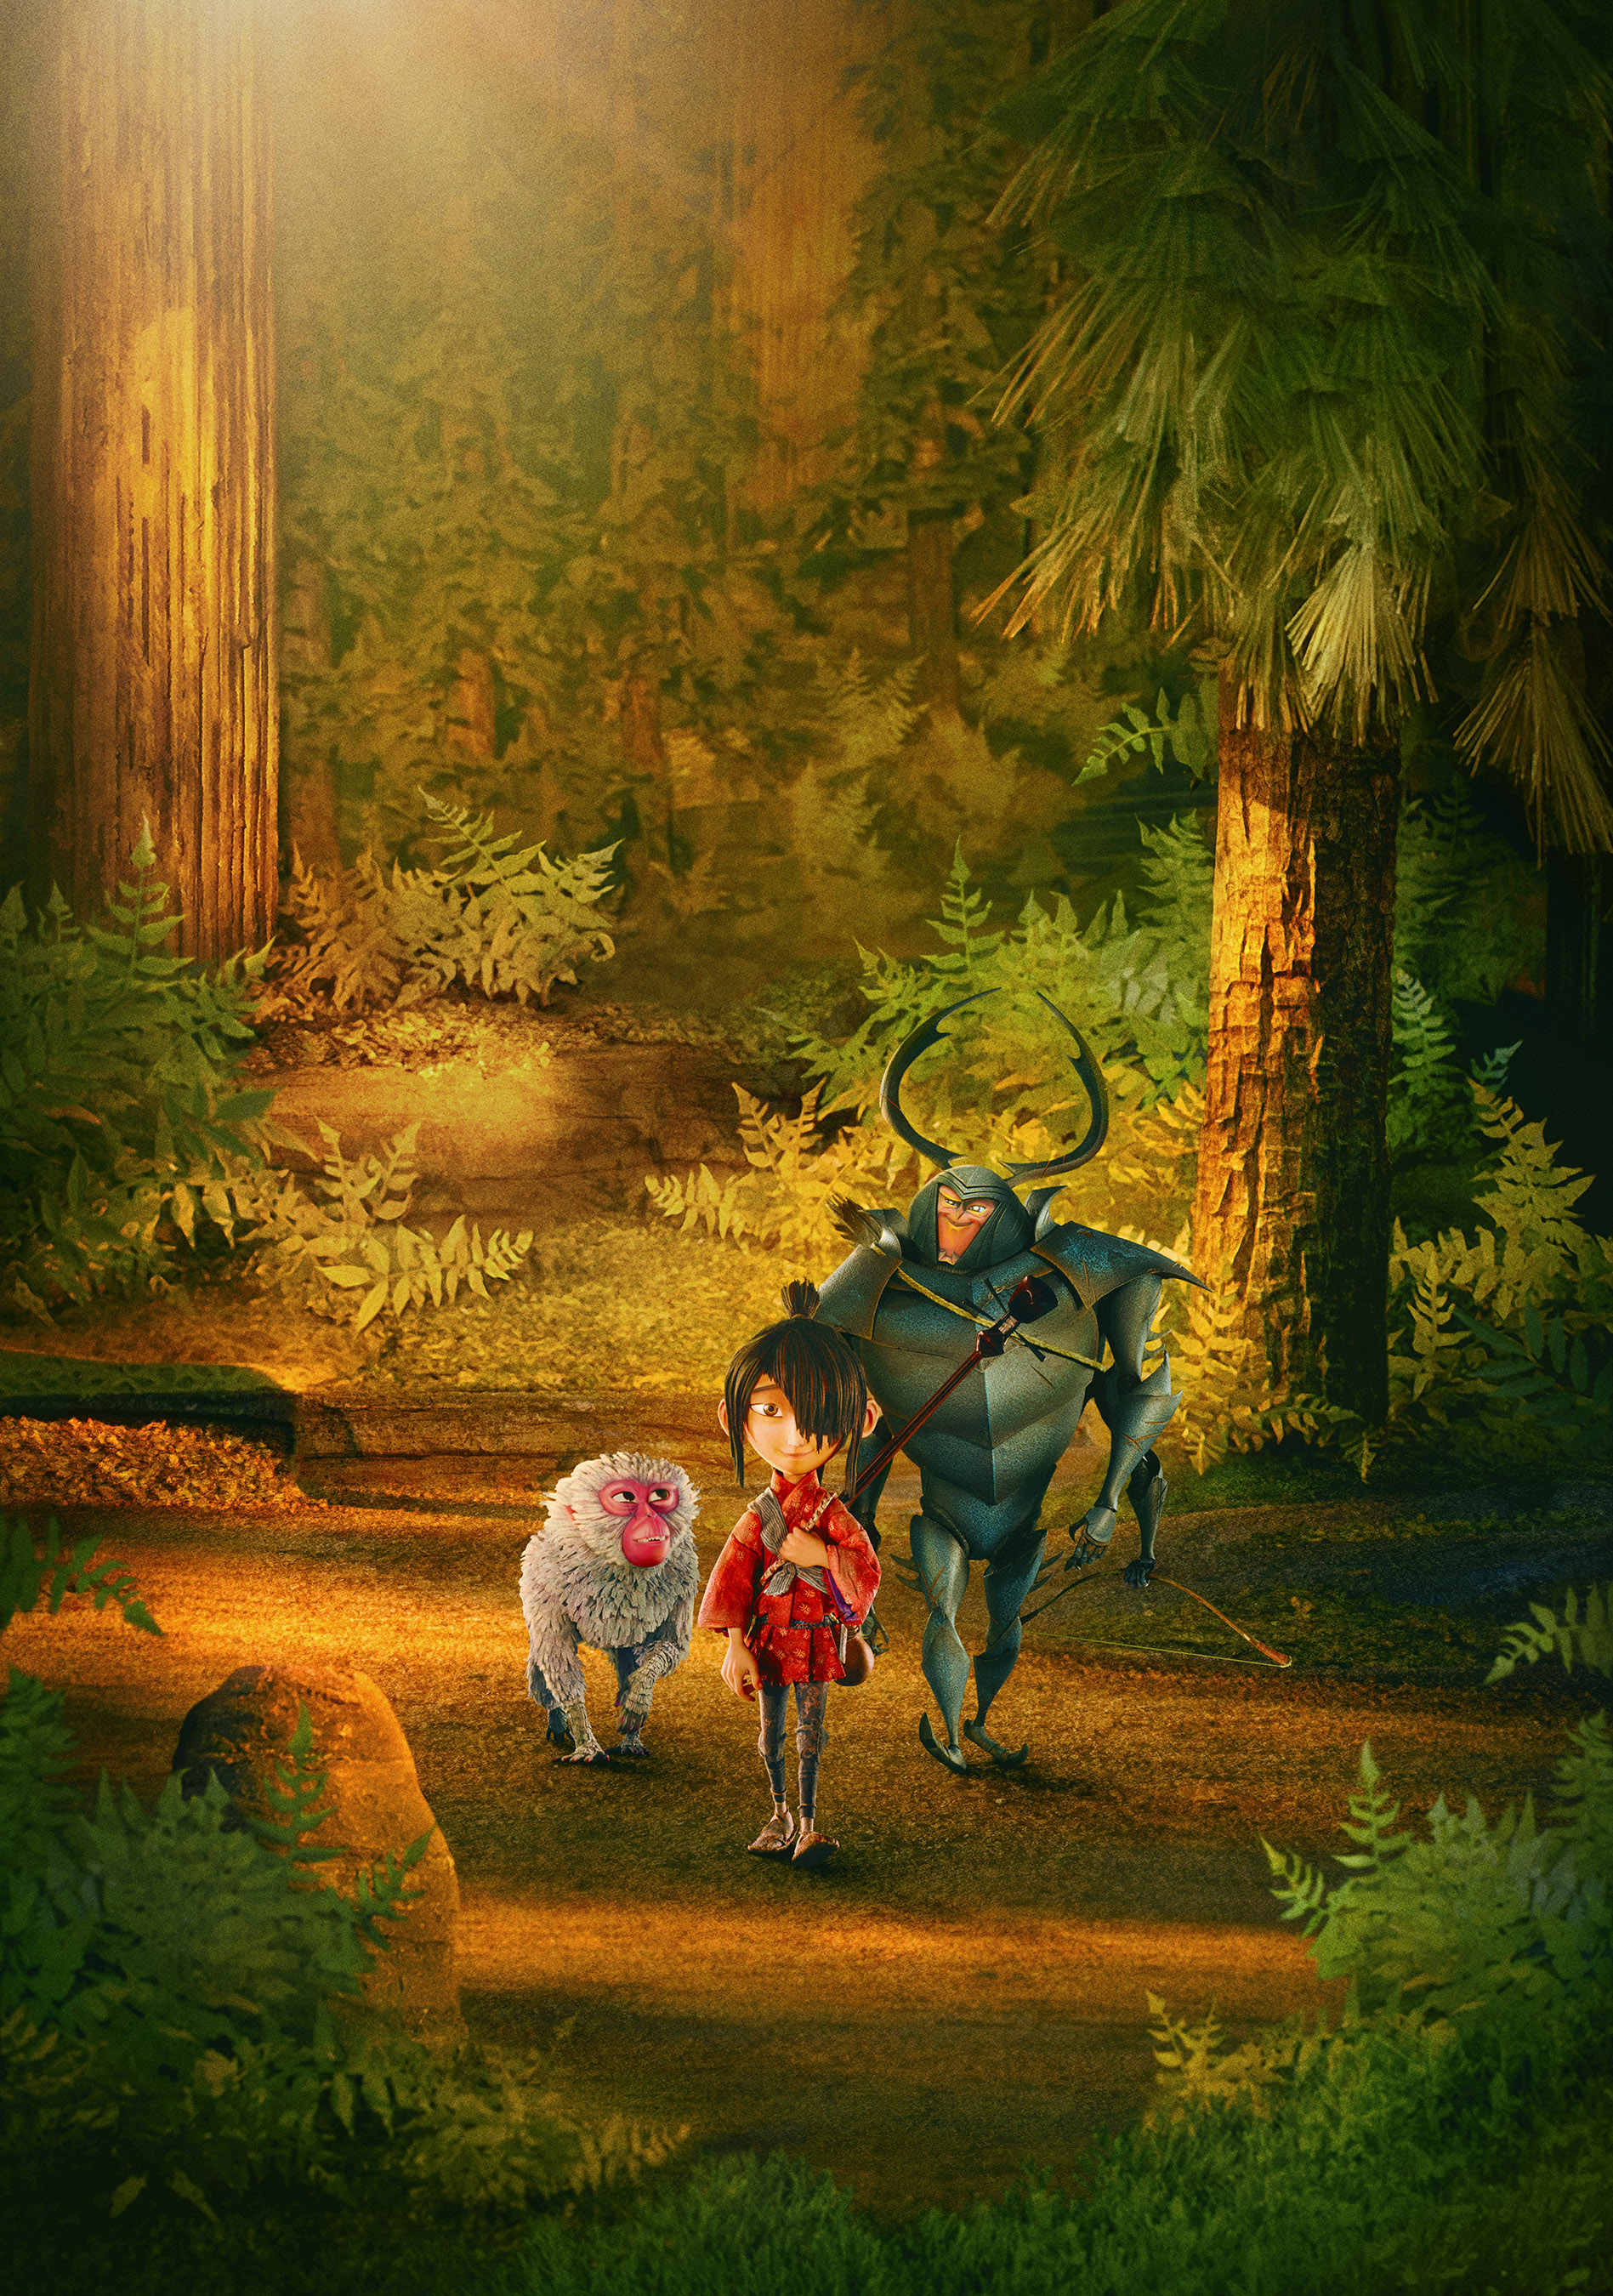 U.S. Forest Service and the Ad Council Partner with Animation Studio LAIKA's Kubo and the Two Strings to Encourage Families to Reconnect with Nature